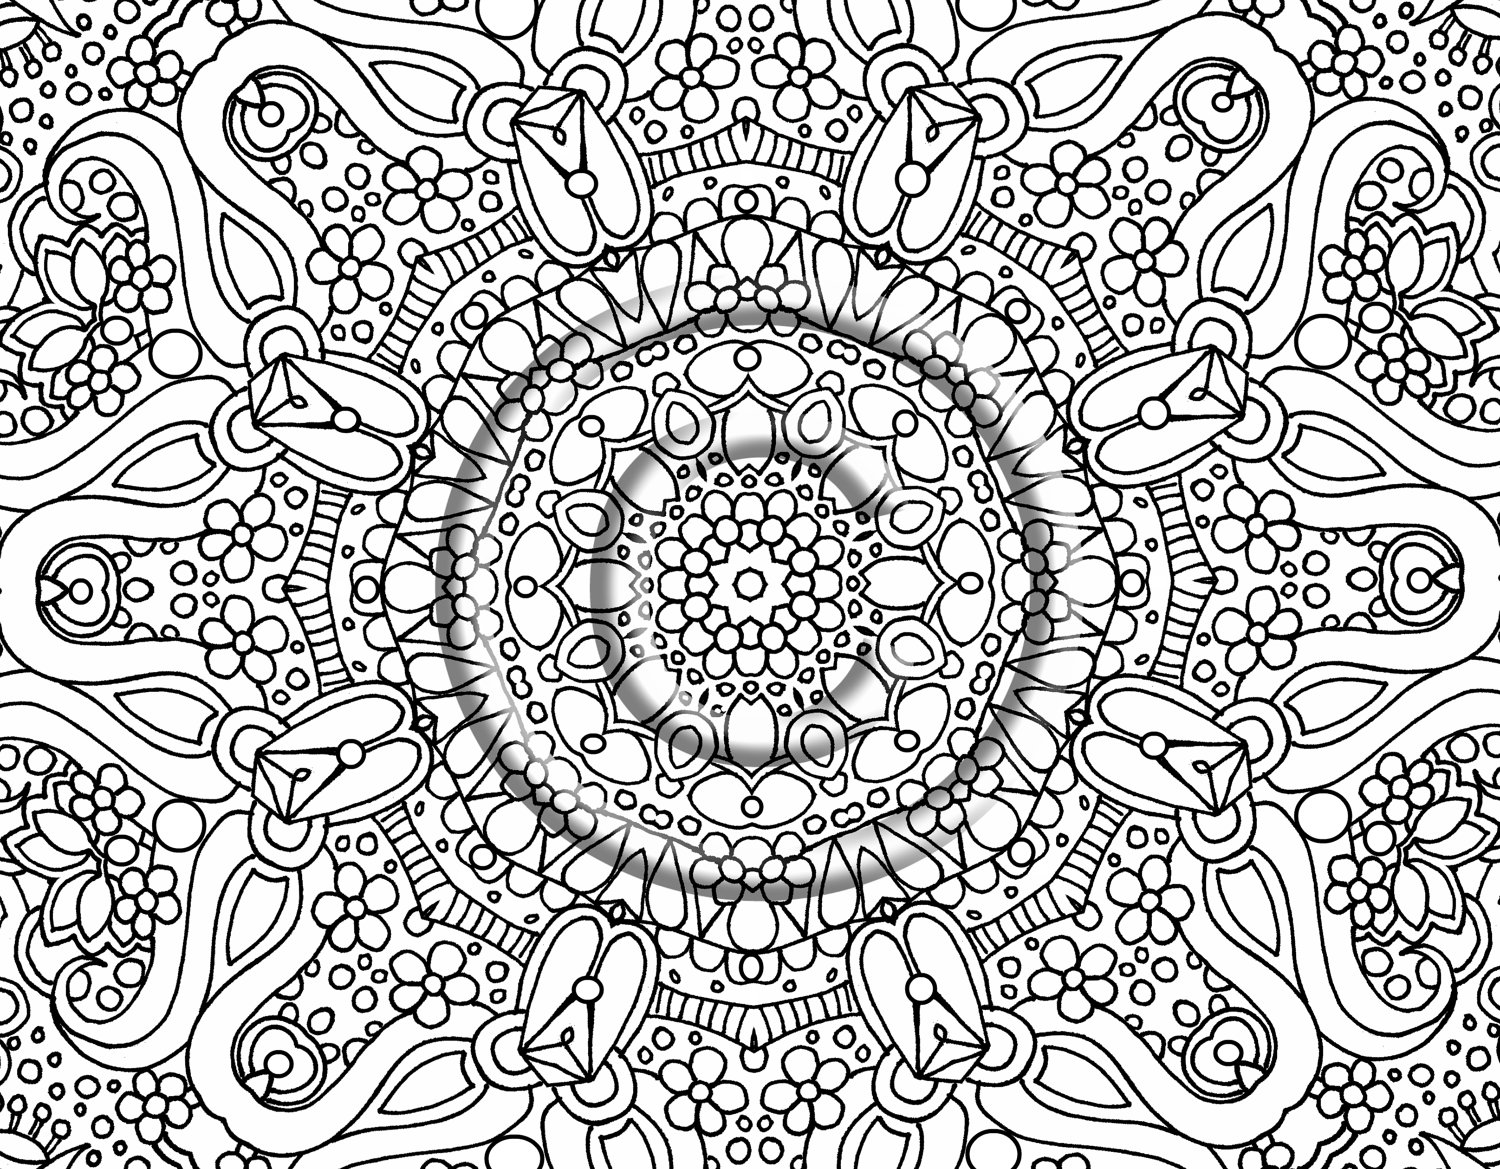 coloring pictures hard free printable abstract coloring pages for adults hard coloring pictures